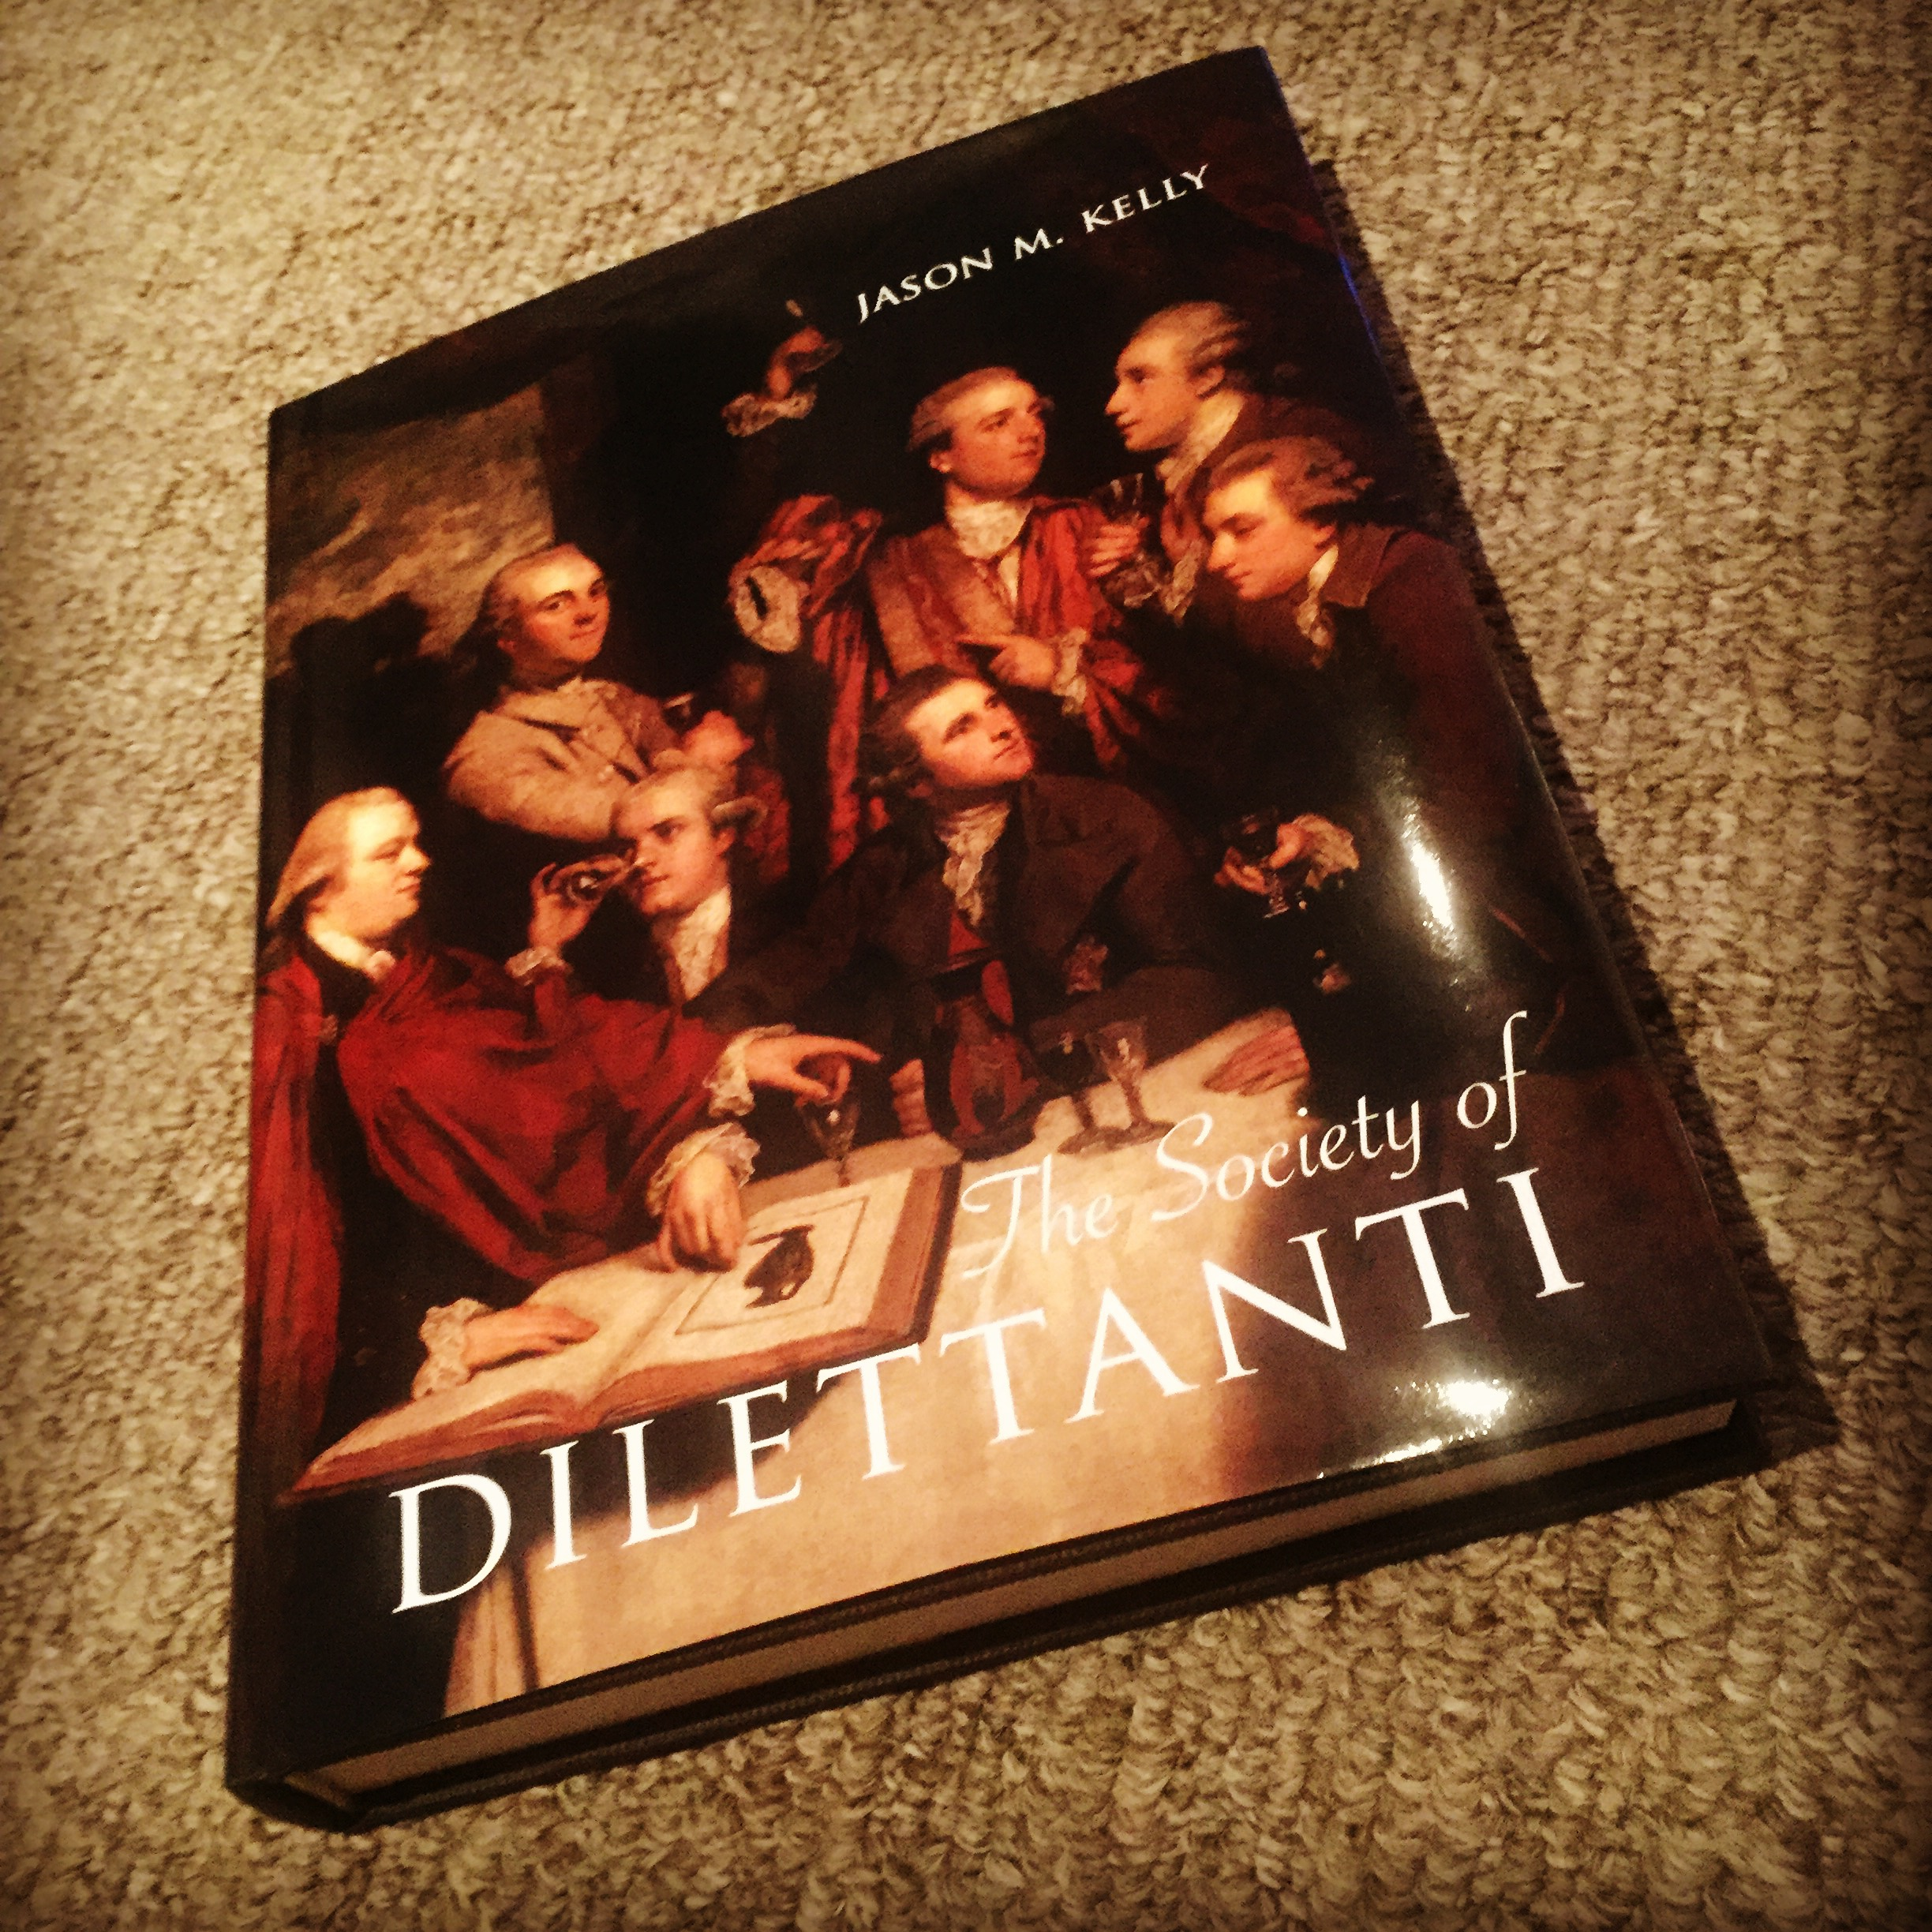 Society of Dilettanti Book Cover